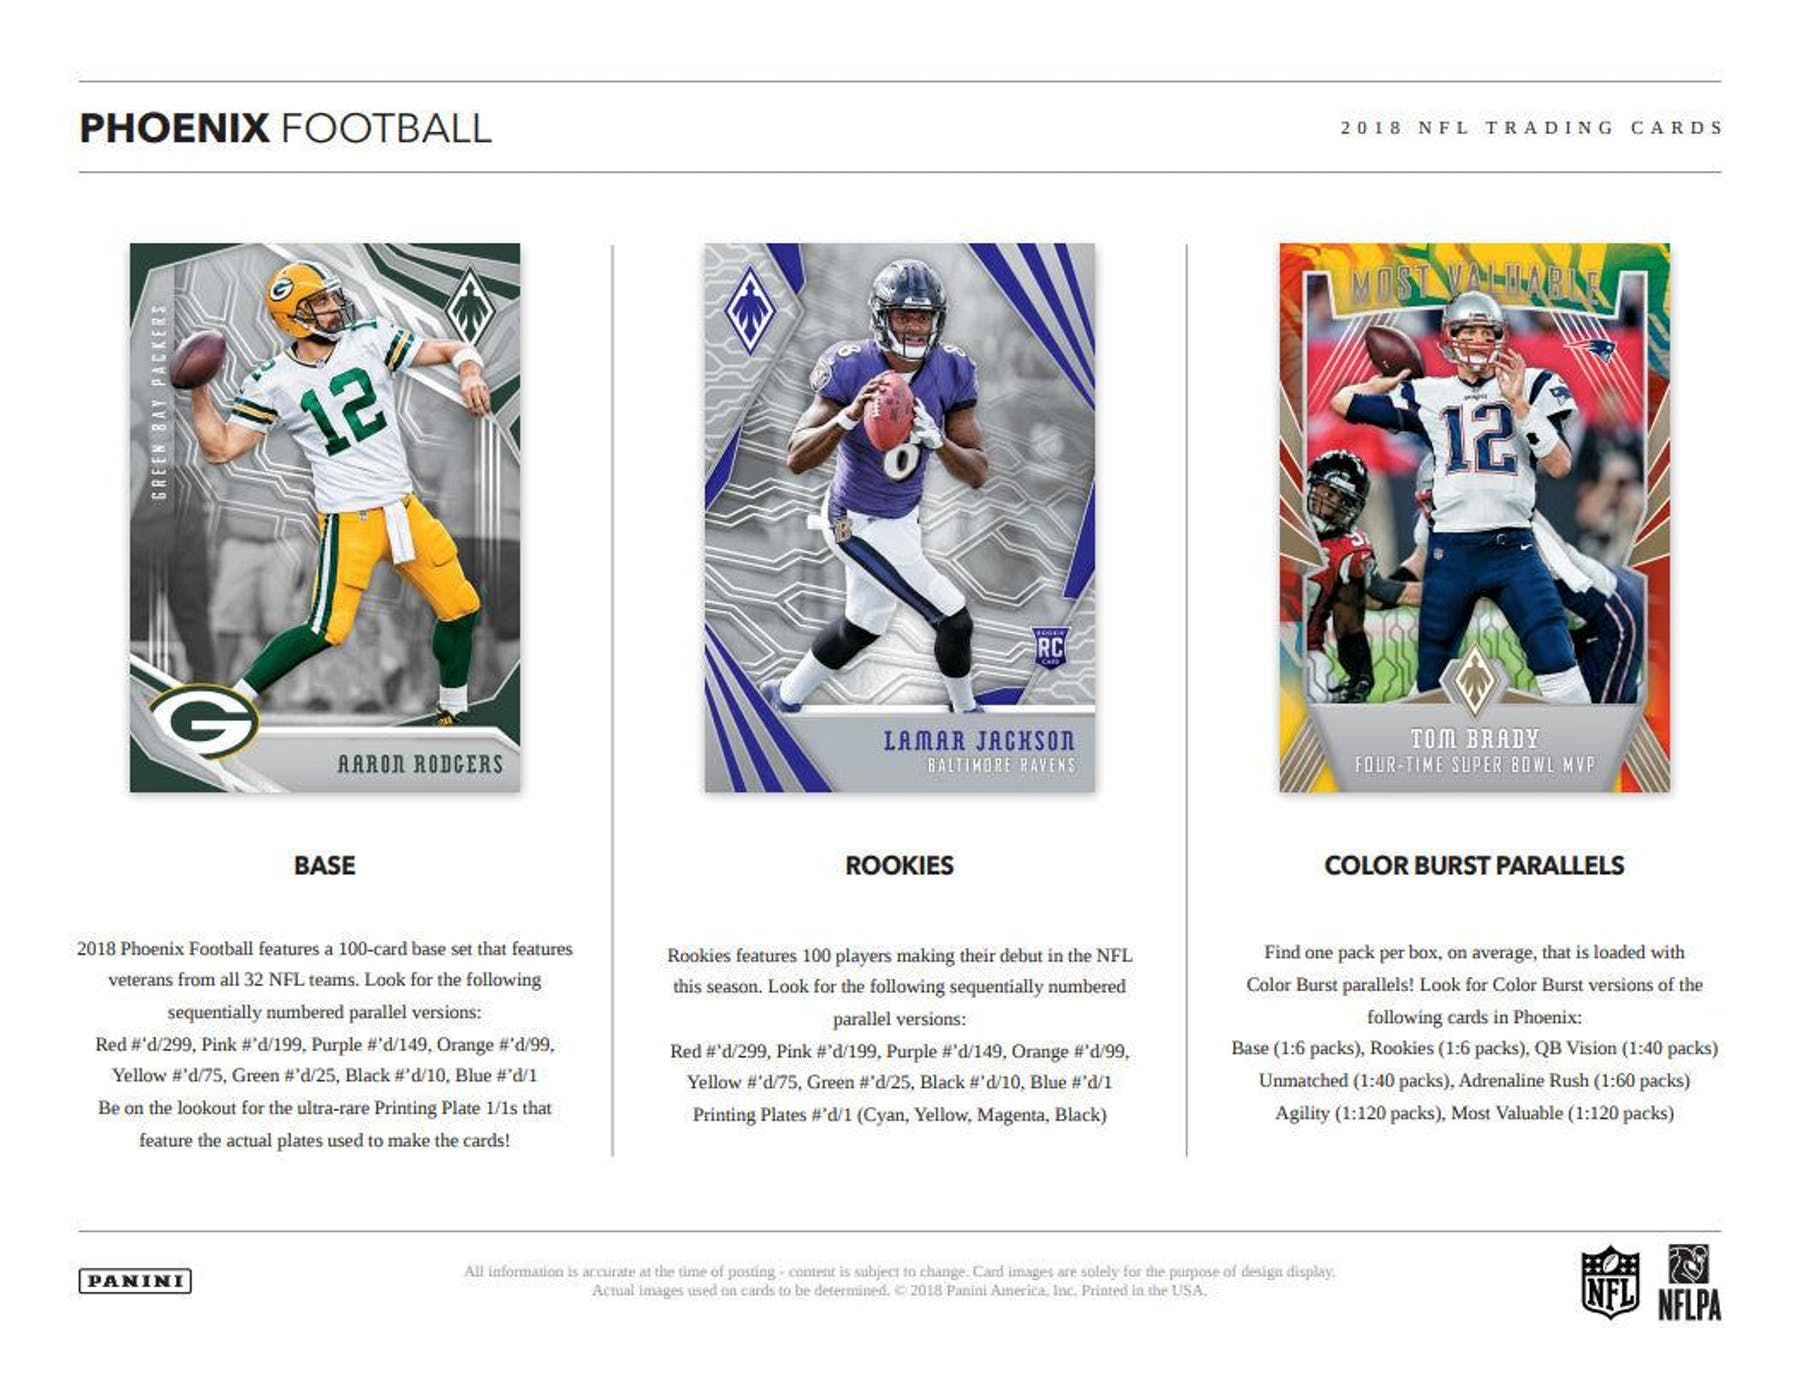 6c9d43ff1 ... 2018 Panini Phoenix Football Hobby Box